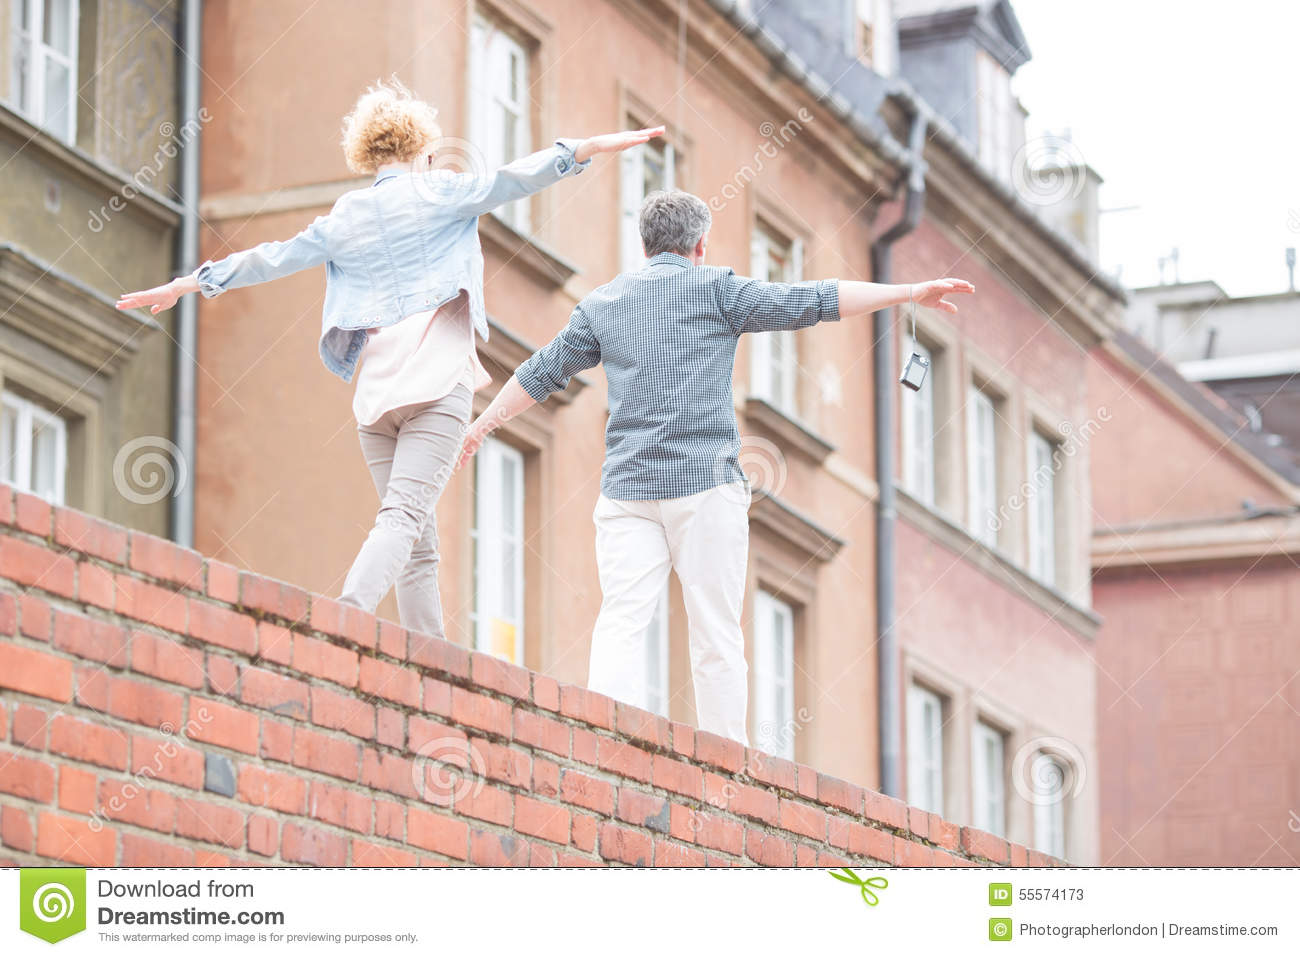 Rear view of middle-aged couple with arms outstretched walking on brick wall